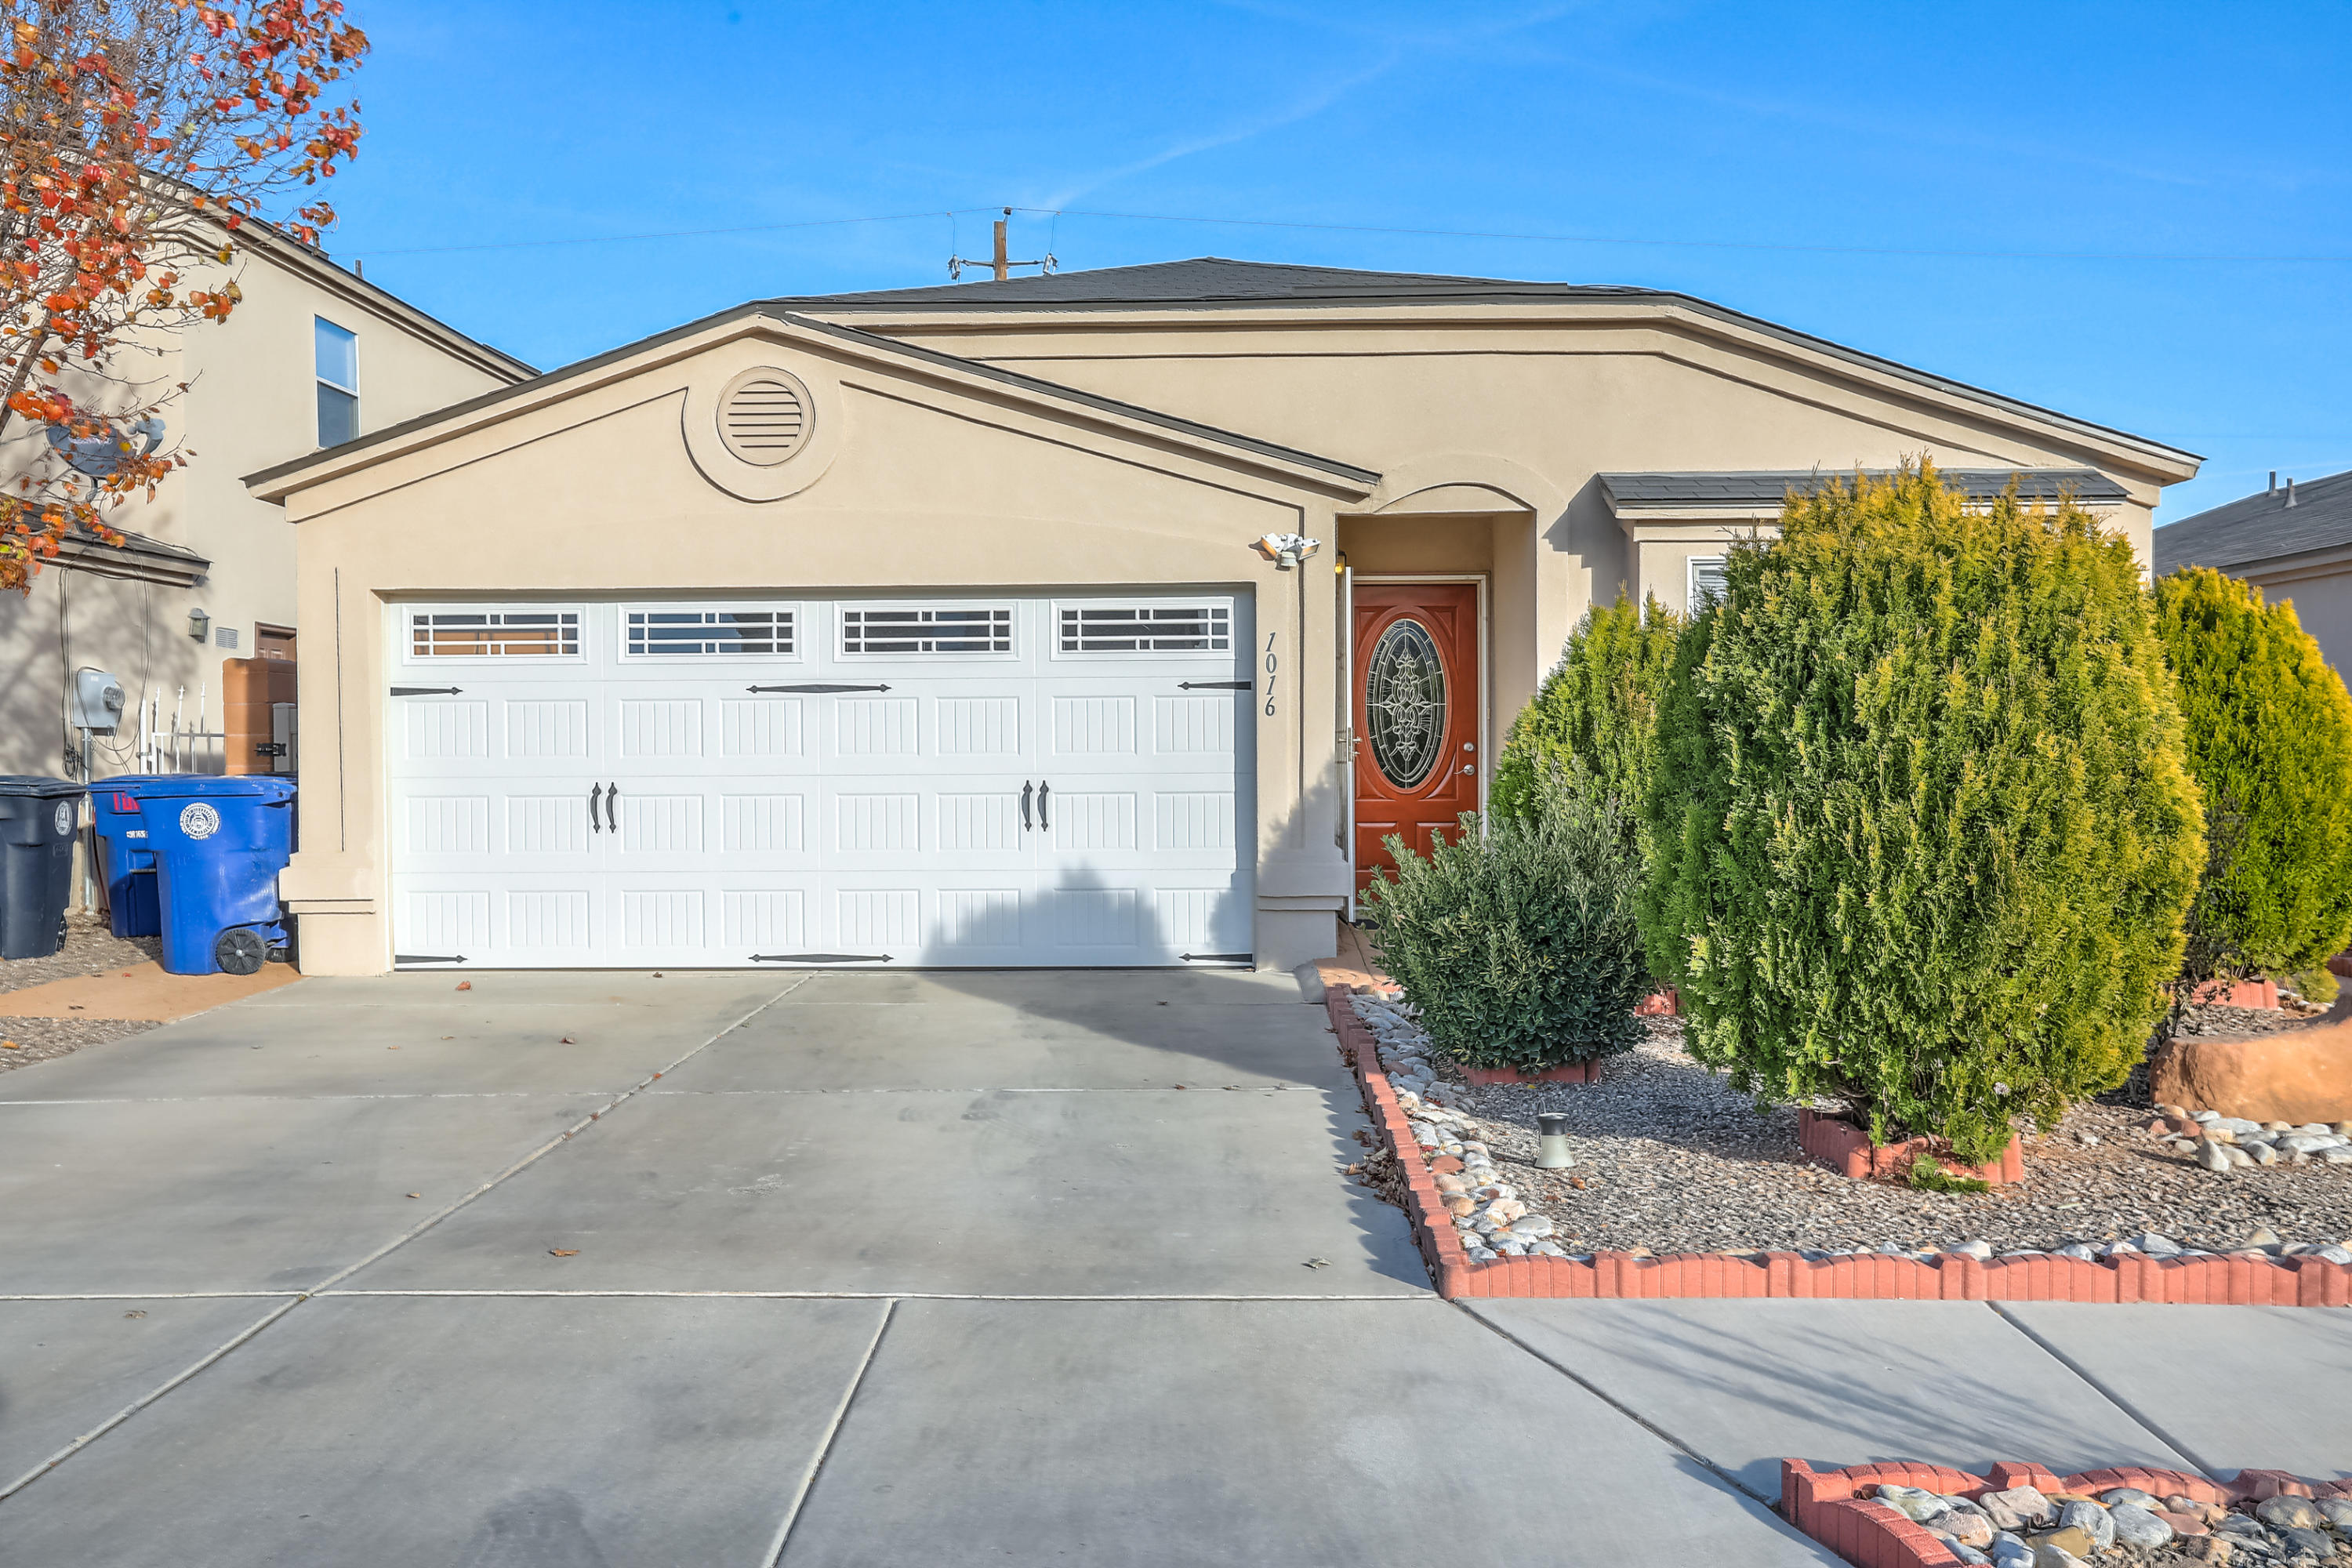 What Great curb appeal!  Open the ''decorator'' front door to view this 1 owner beautiful home. It has a great room, an open kitchen w/a peninsula, a Master bedroom suite, & 2 other bedrooms, plus an additional  bath.   There's NO CARPET! It was remodeled with neutral floor tile throughout the house, new ceiling fans & new interior doors! Wait until you see the spacious two-car garage complete w/a beautiful new garage door! Instead of ''weeding'' yards, you'll be sitting, sipping a cold drink because this home is landscaped w/patio stones on both sides of house & back yard.  The  Landscaped front features mature trees.  There is easy access to schools, shopping, restaurants, and I-40.  Don't ''Walk'', ''Run'' to make your offer! You could be enjoying your new home within 45 days!